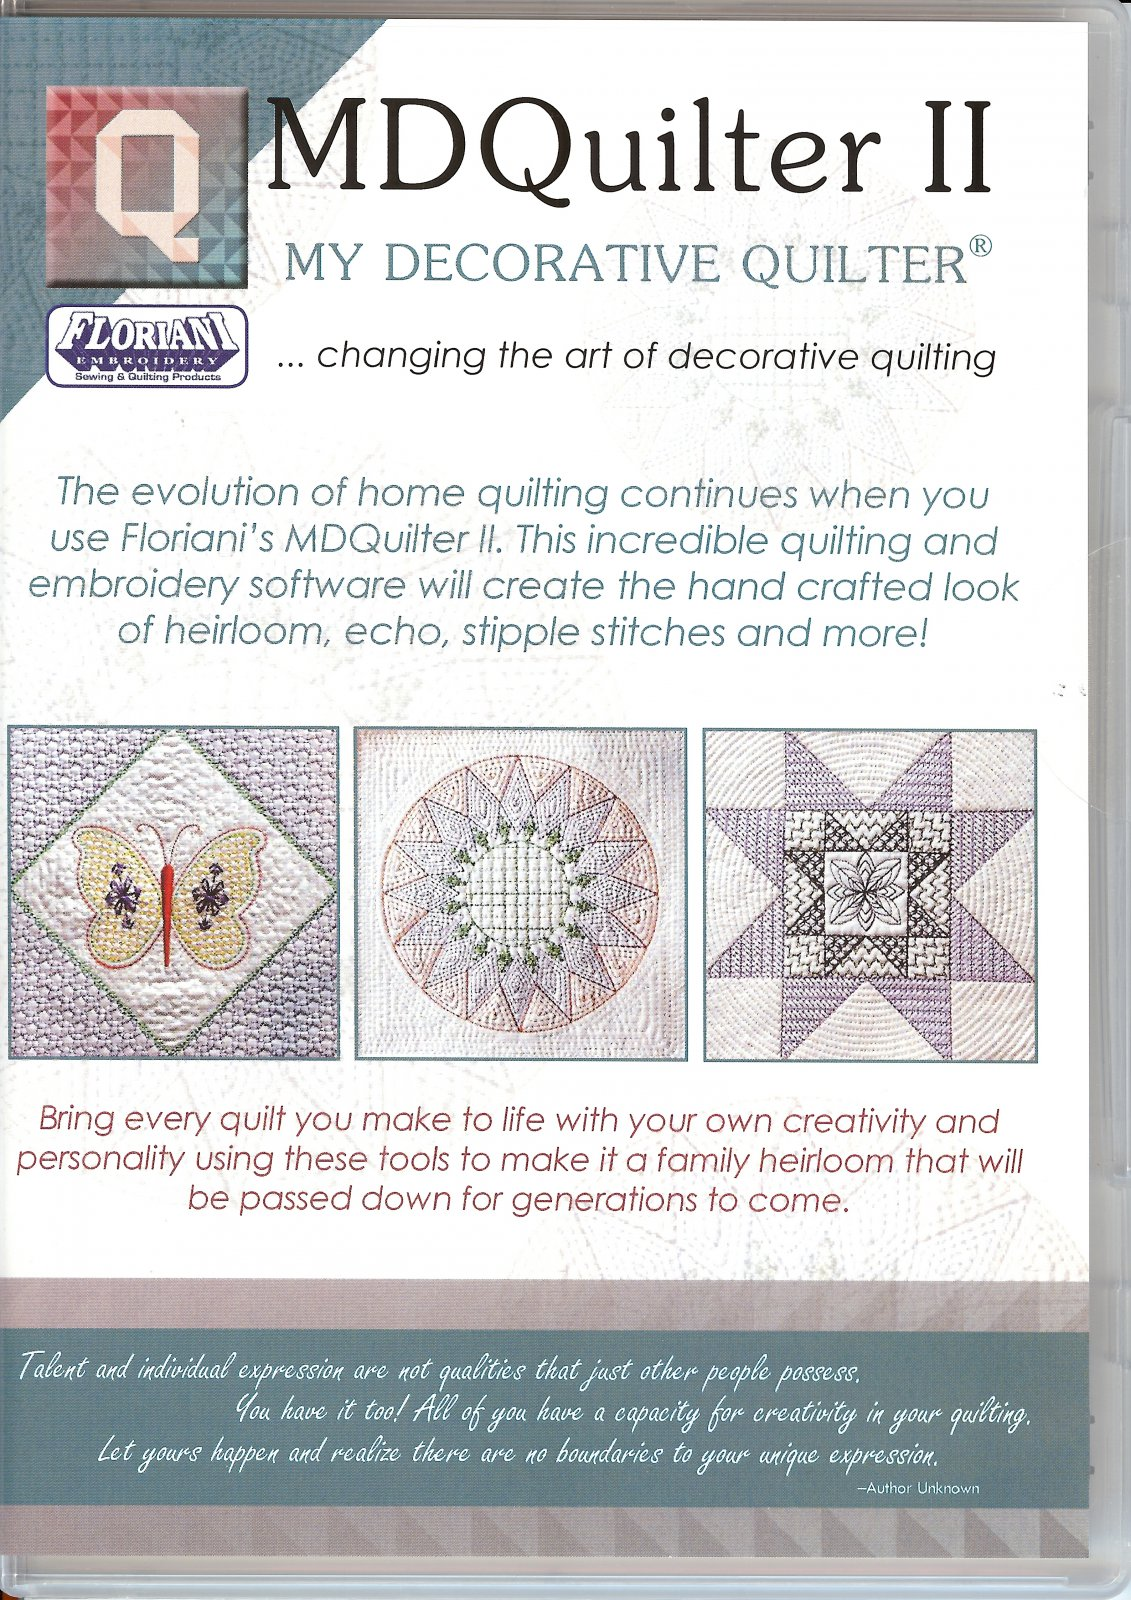 MD QUILTER 2 - My Decorative Quilter - Floriani